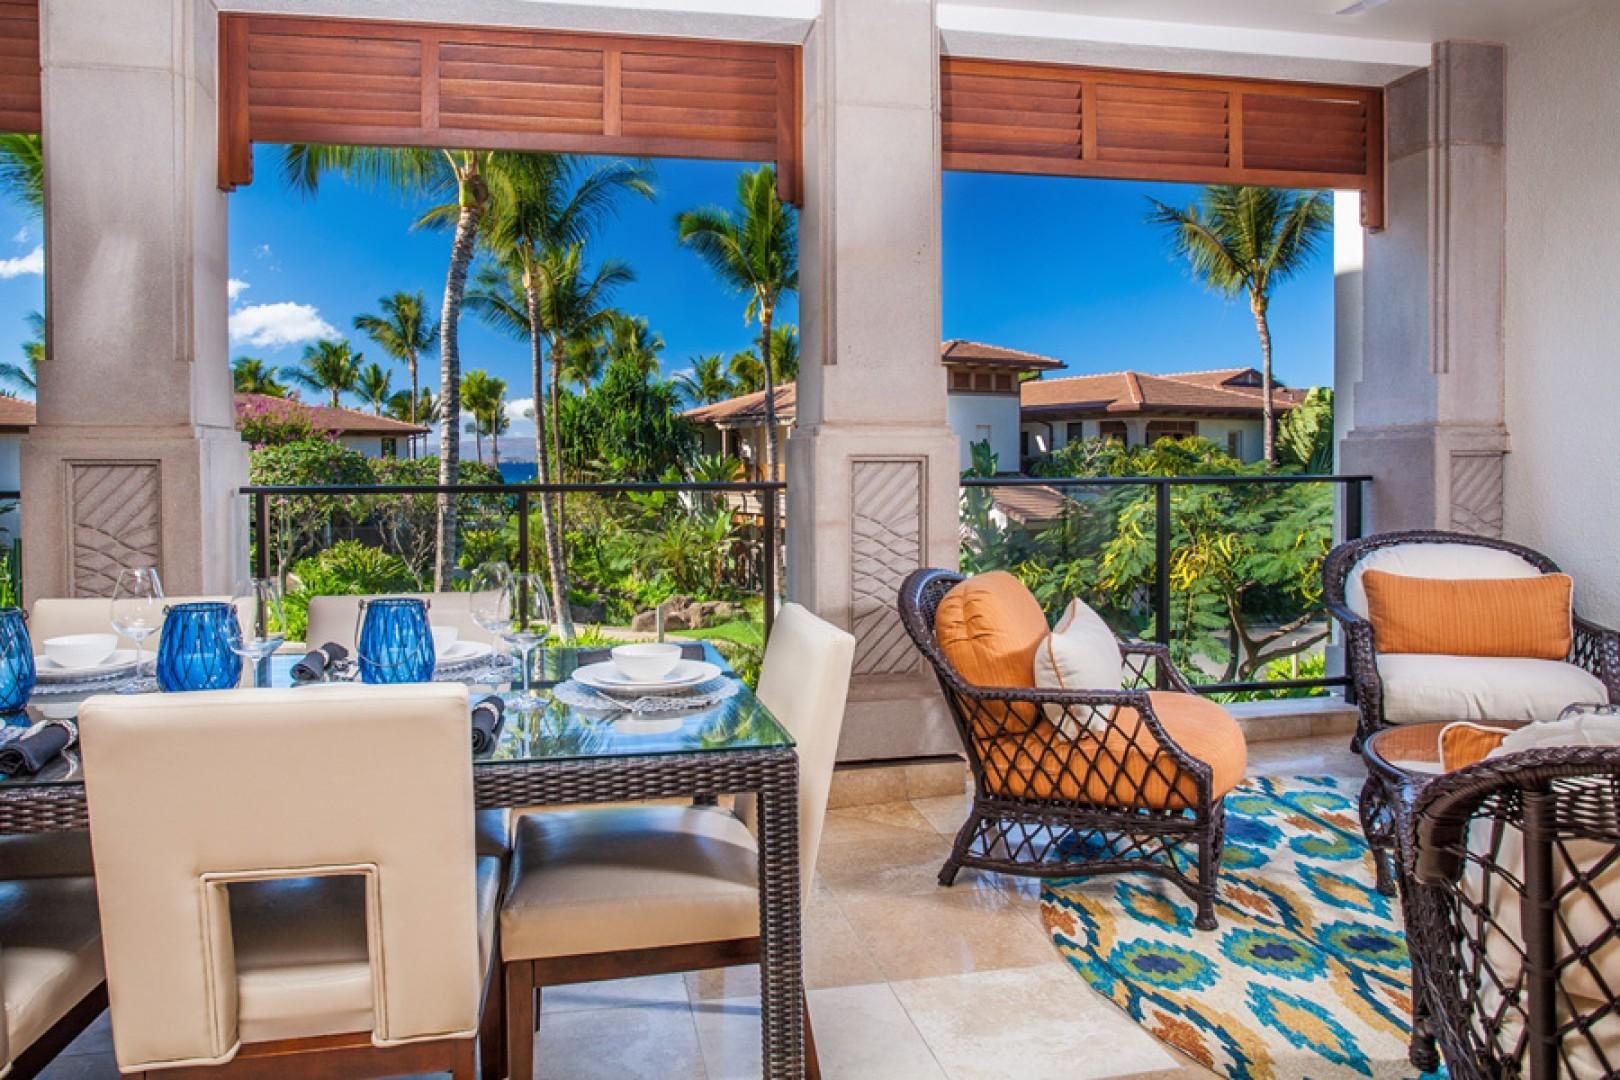 Castaway Cove C201 - Ocean View Fresh Air Covered Dining Terrace with Viking BBQ Grill and Chat Area